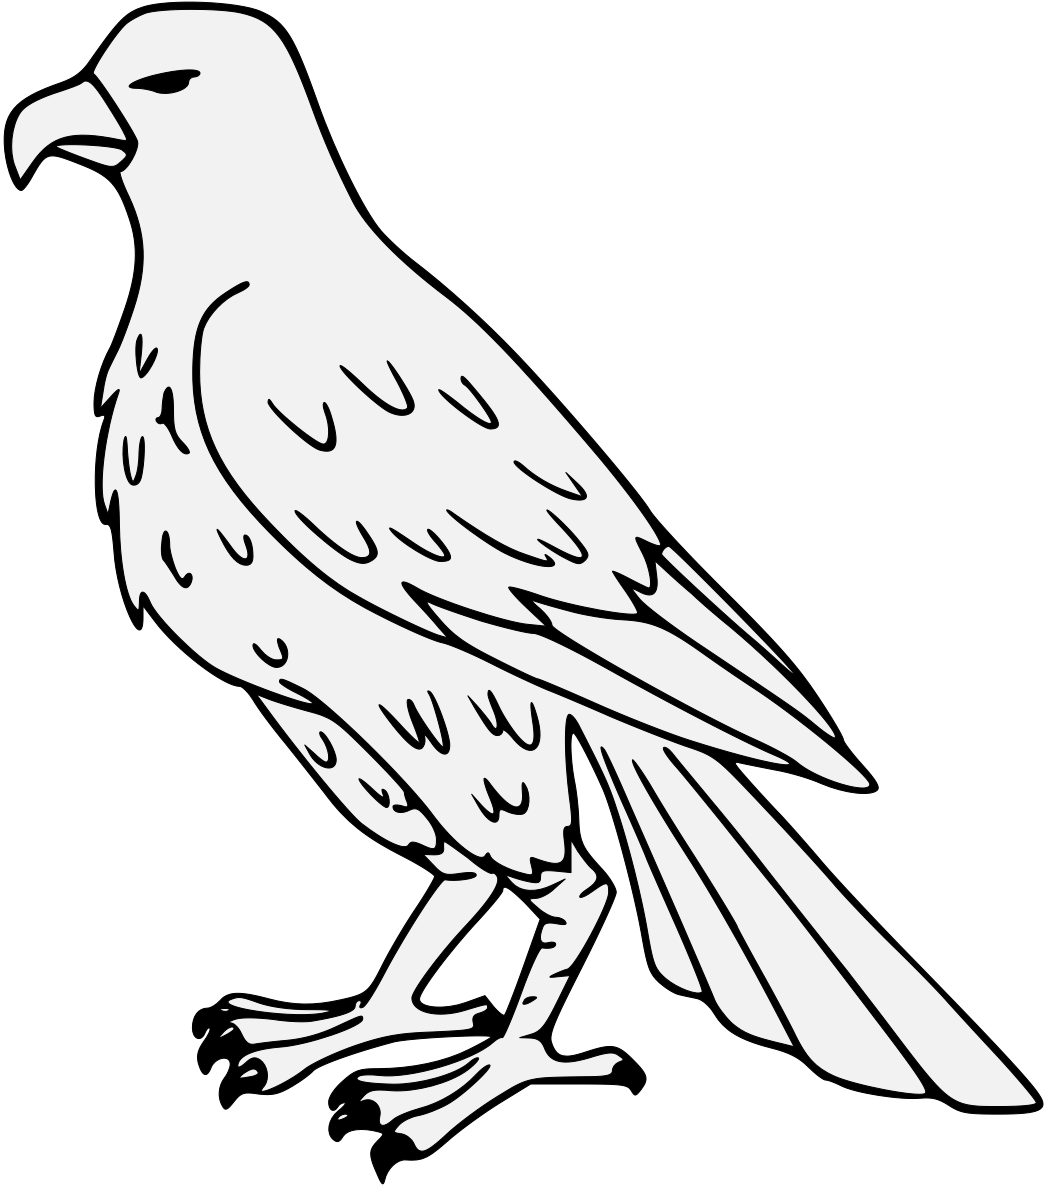 Cool clipart falcon. Line drawing at getdrawings